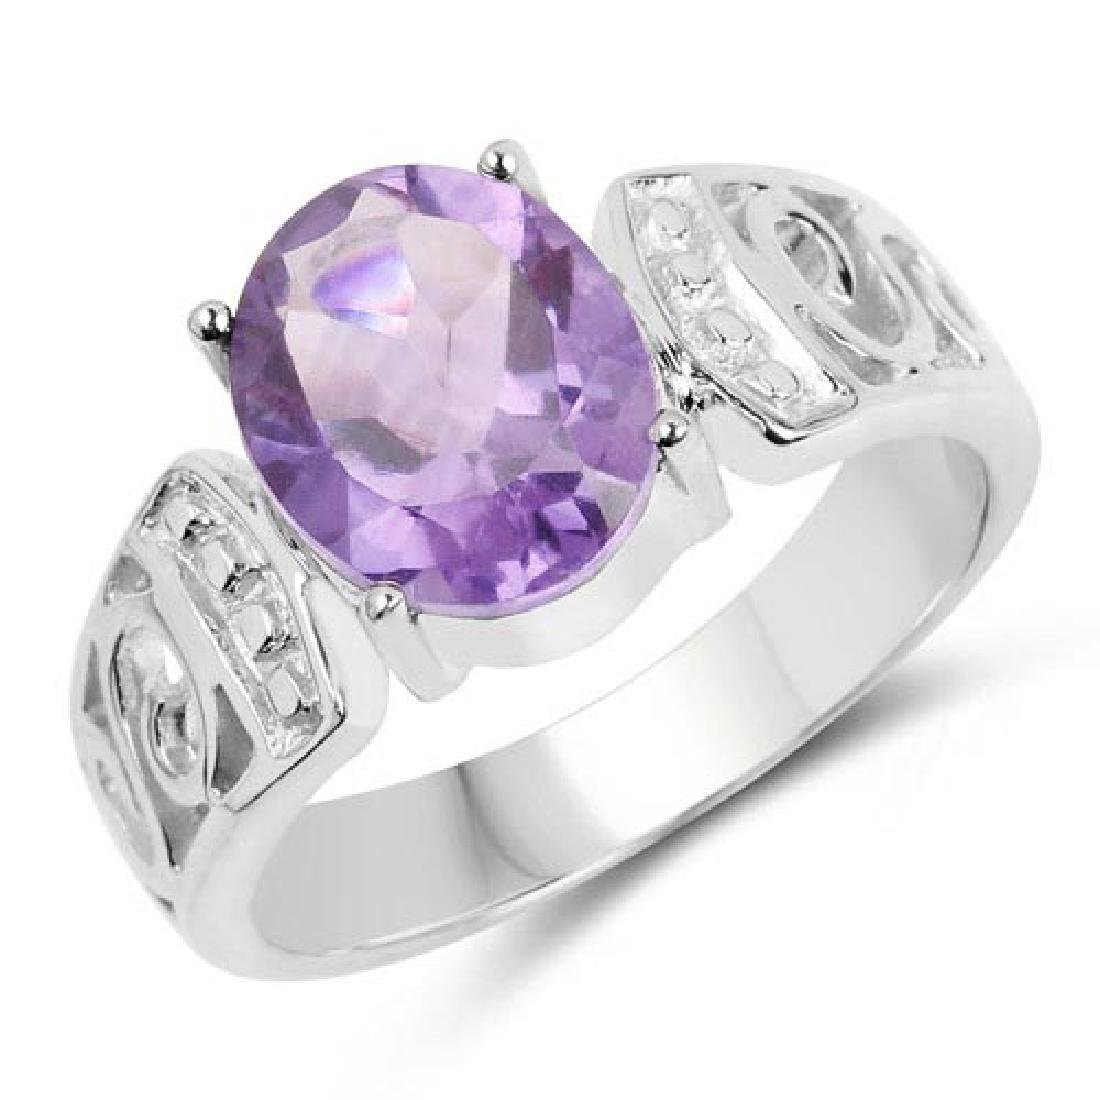 2.64 Carat Genuine Amethyst .925 Sterling Silver Ring